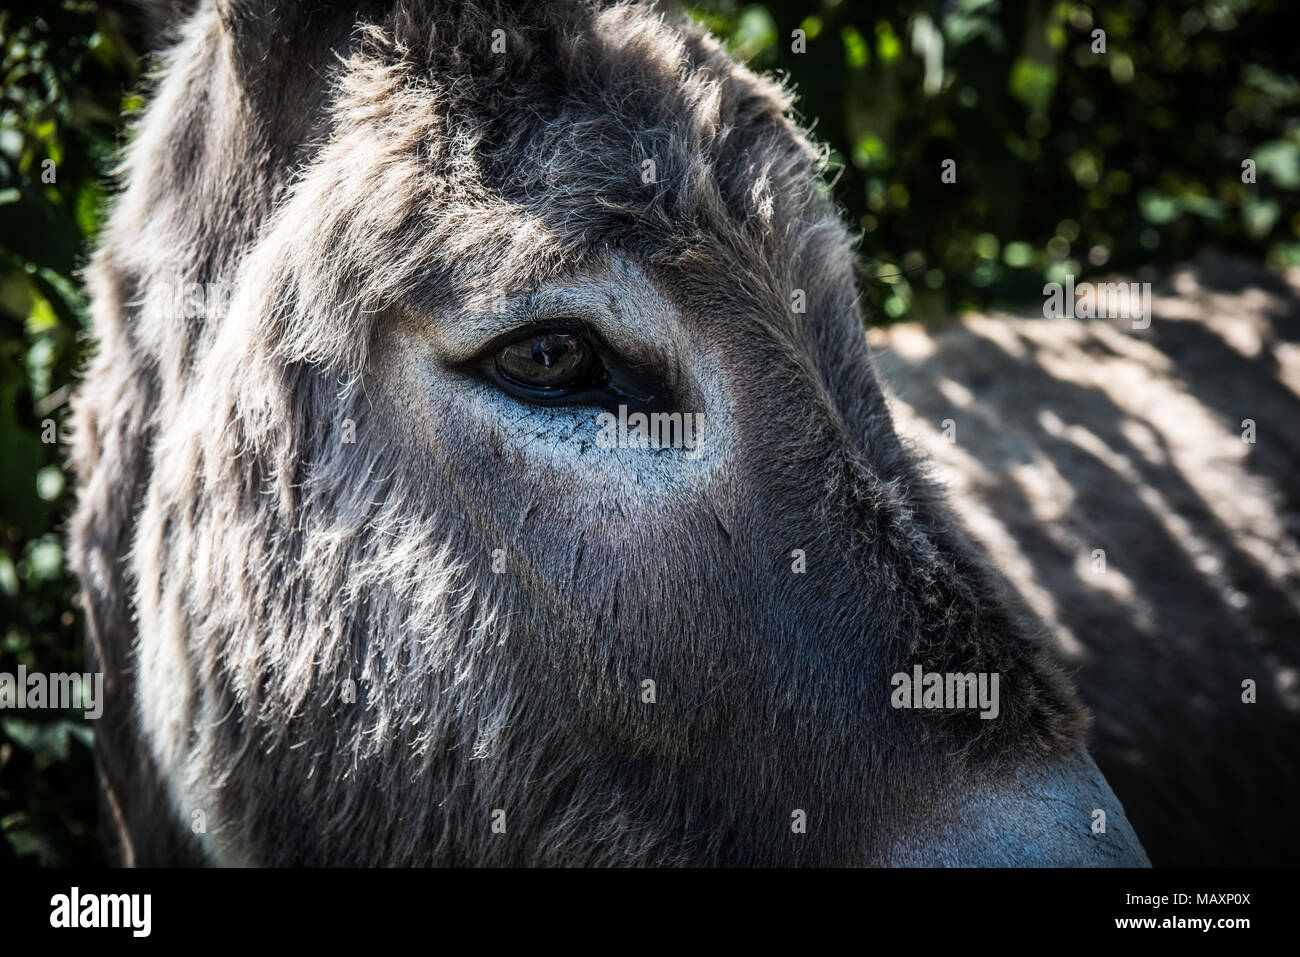 Close up portrait of a donkey's eye - Stock Image